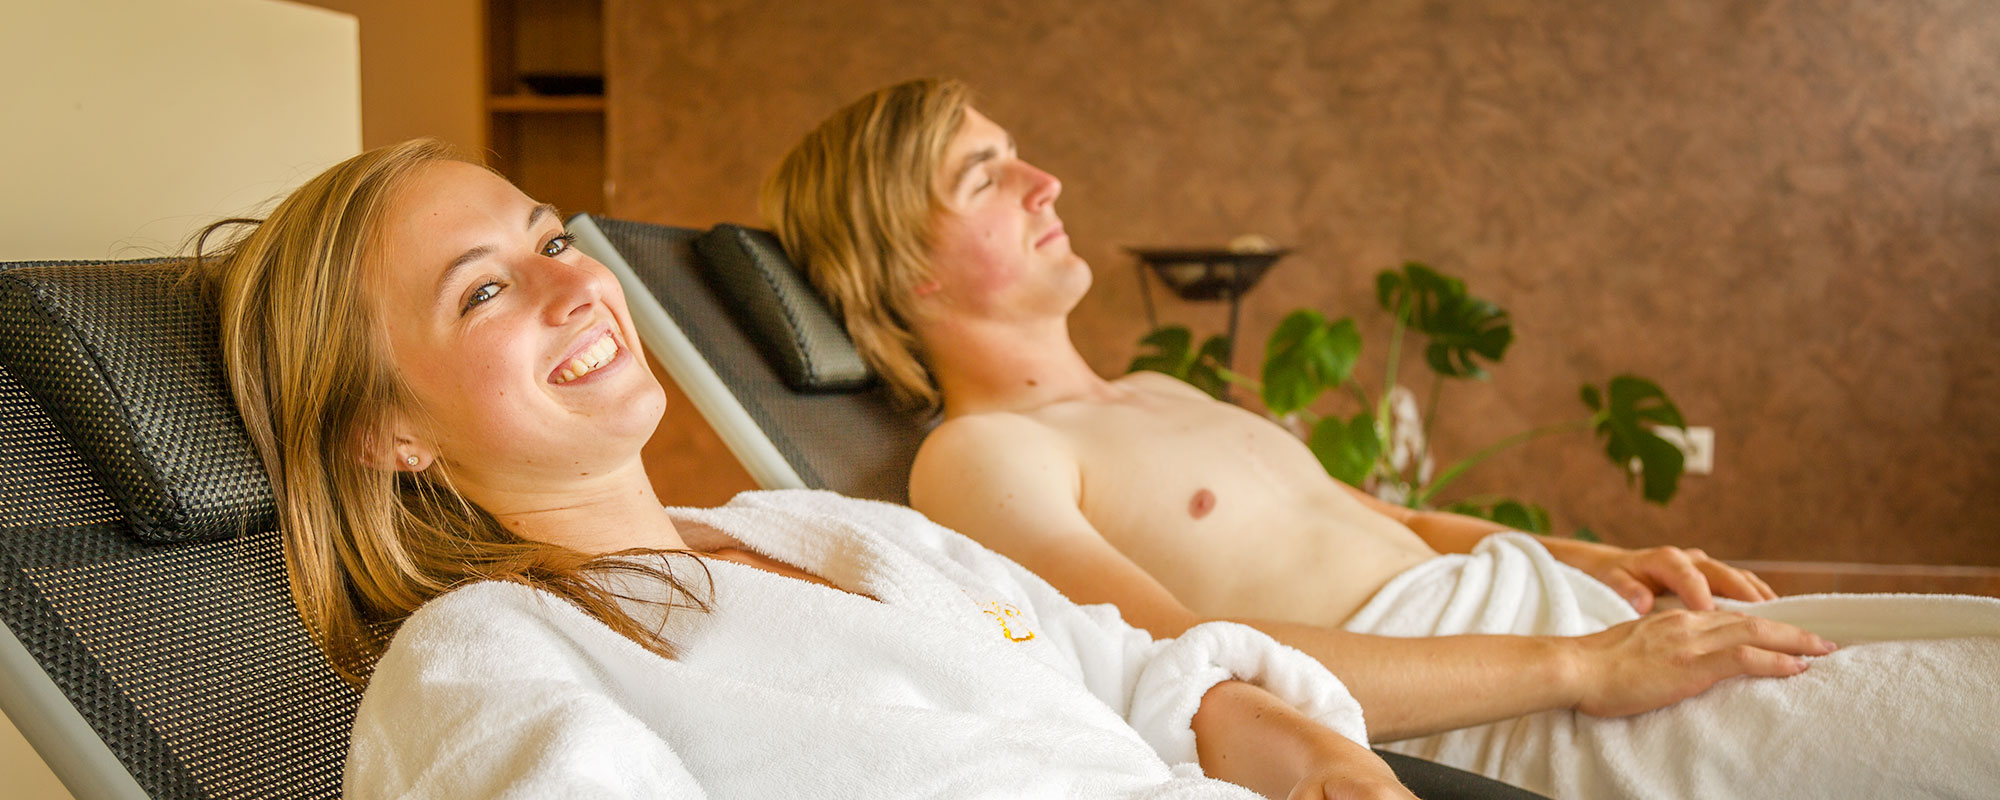 Wellness at Hotel Winterer in Schladming